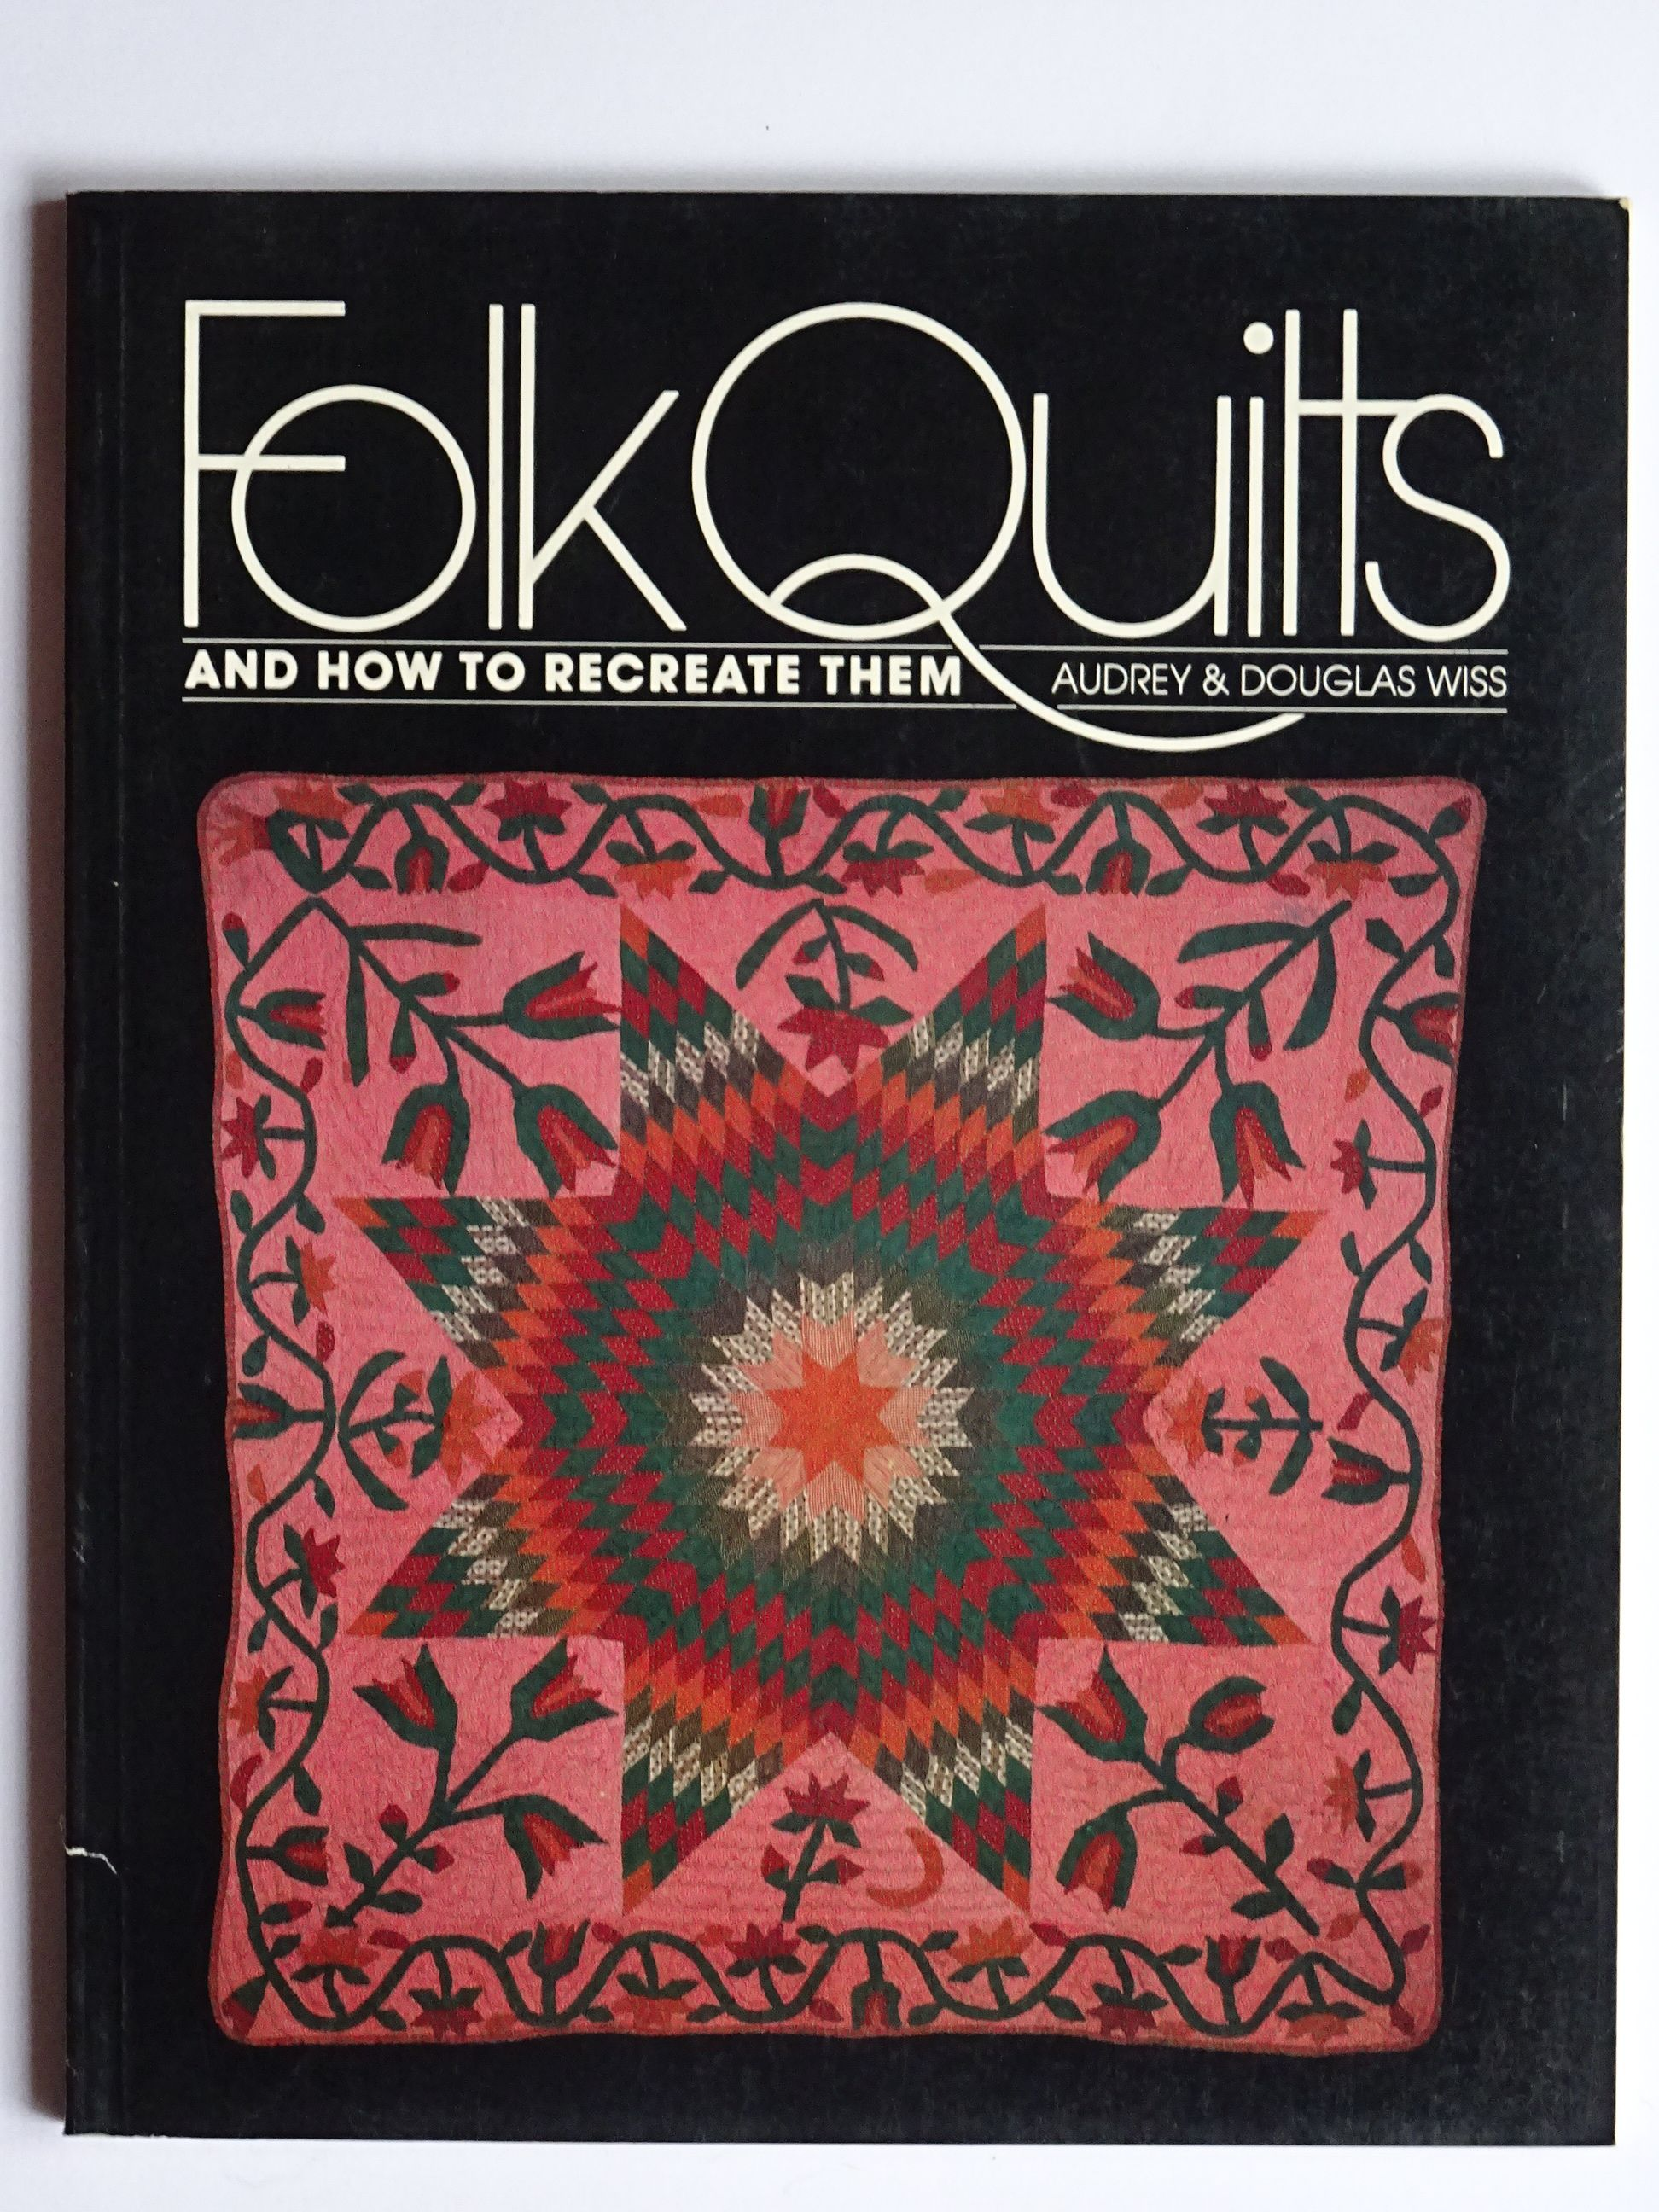 Wiss, Audrey & Douglas - Folk Art Quilts and how to create them